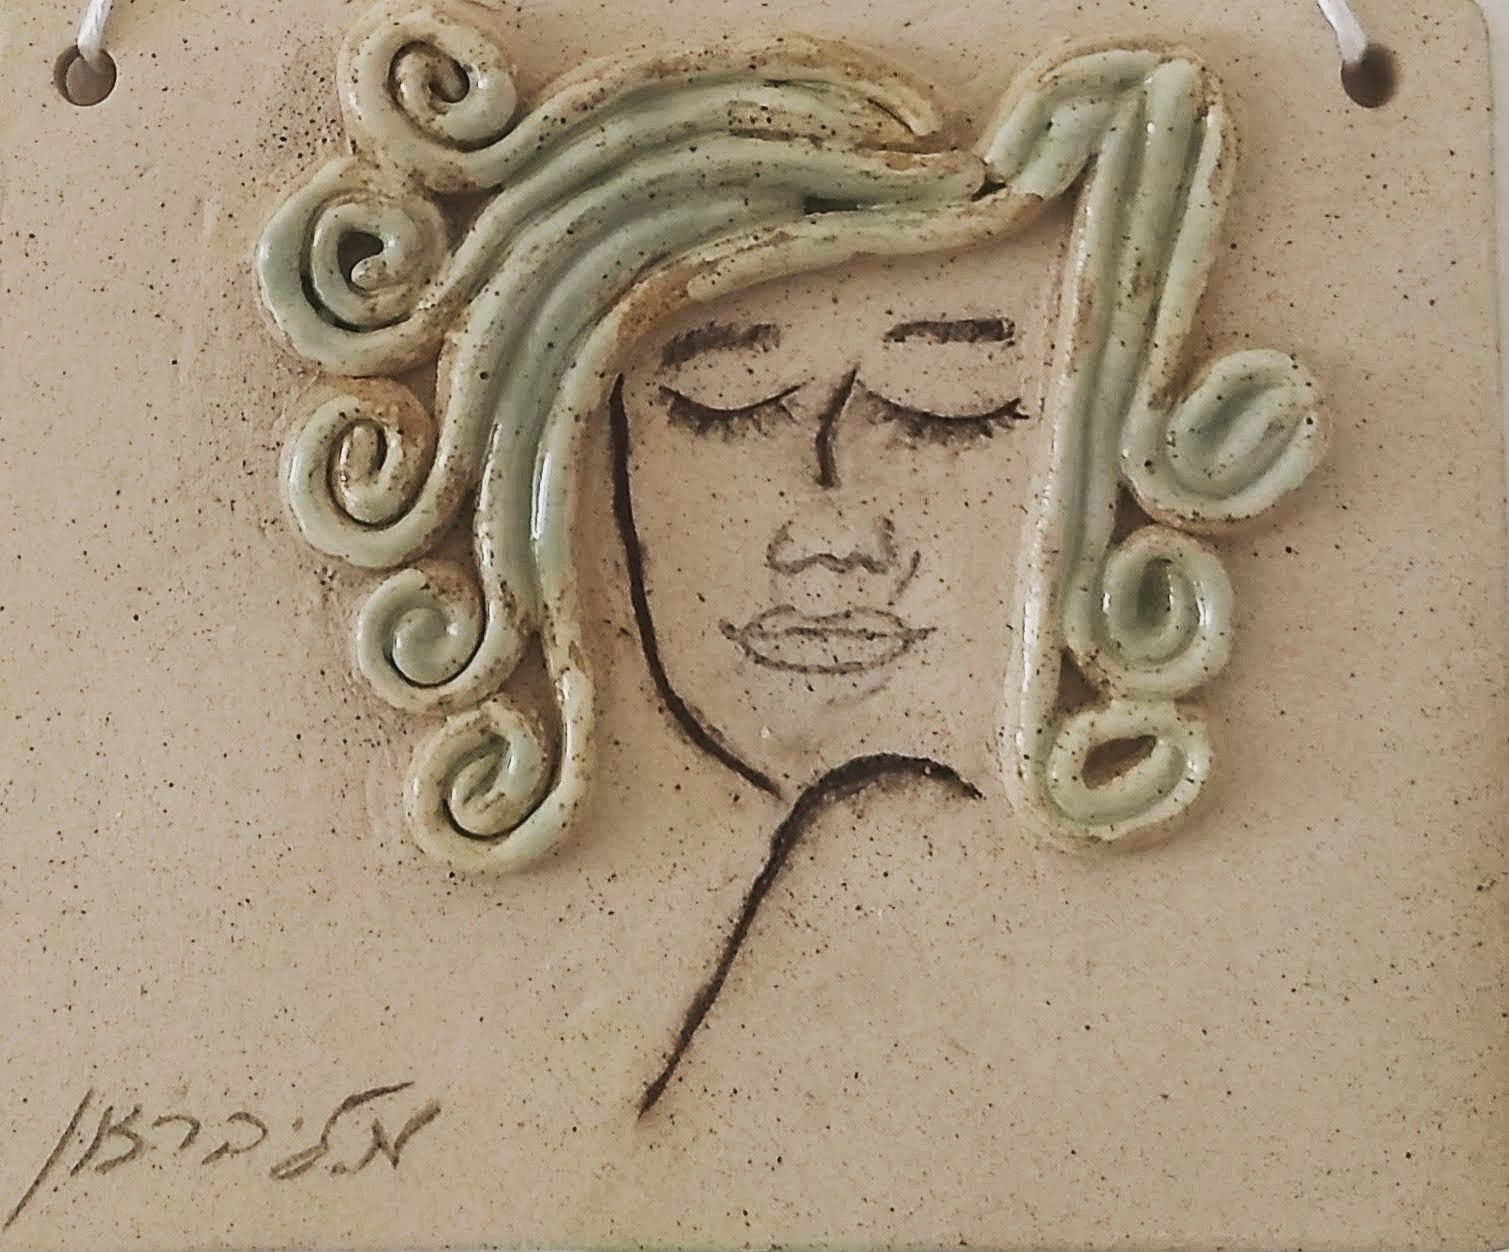 Pin by M L שיננית on love clay in 2020 Clay